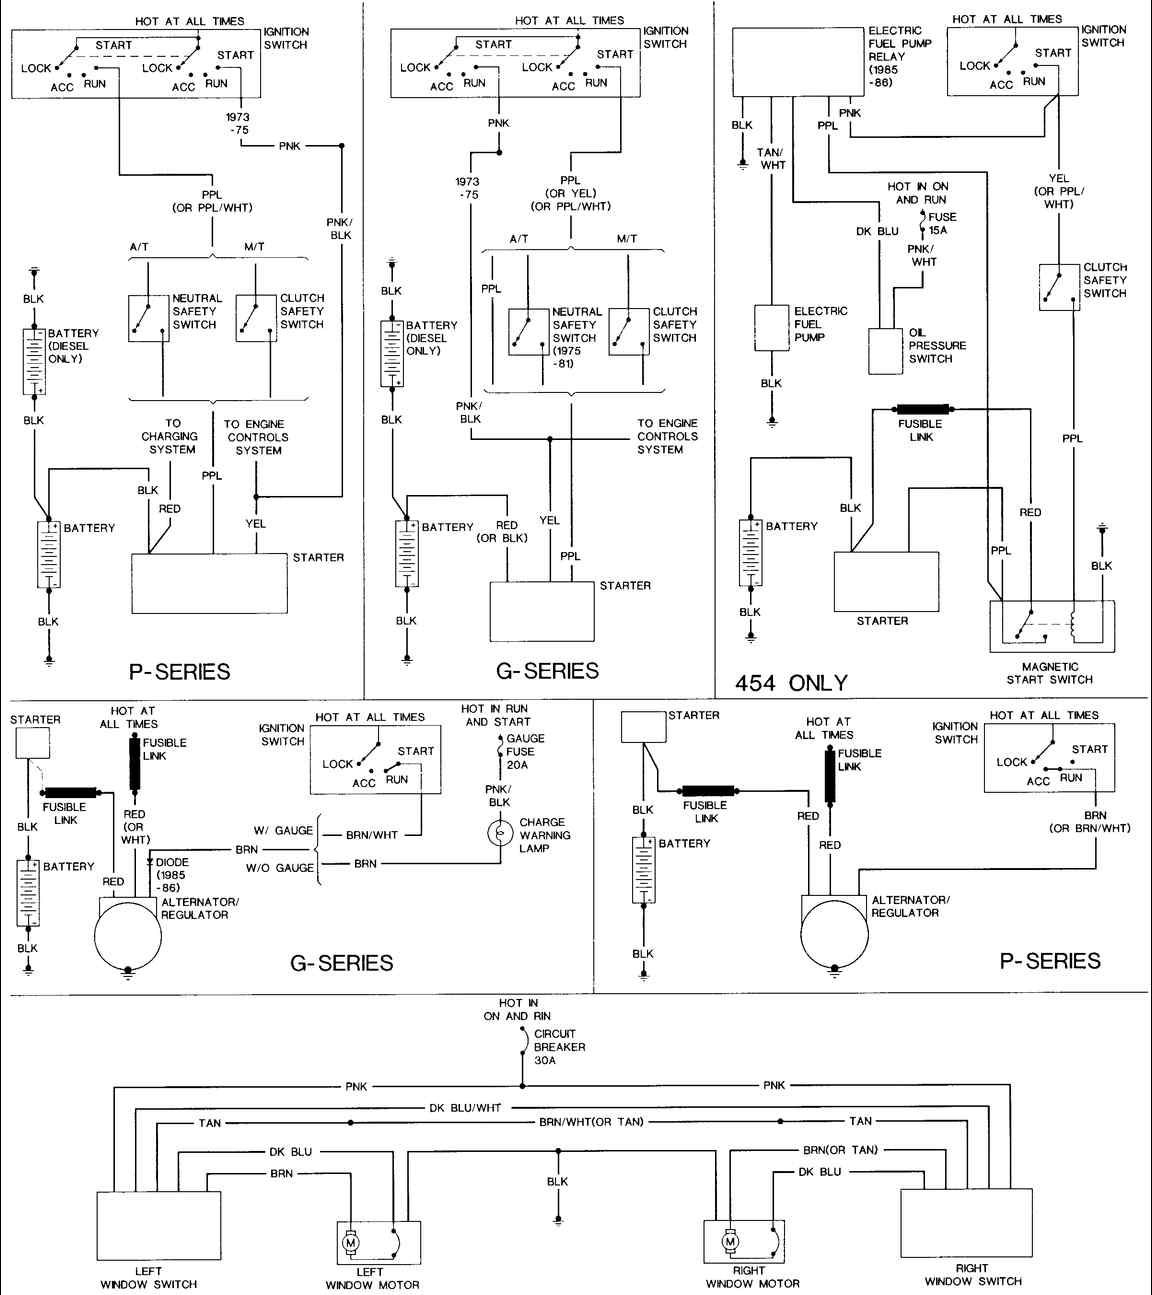 0c73623a181dc376dbb4777e2029d285 85 chevy truck wiring diagram 85 chevy van the steering column chevy starter wiring diagram at virtualis.co